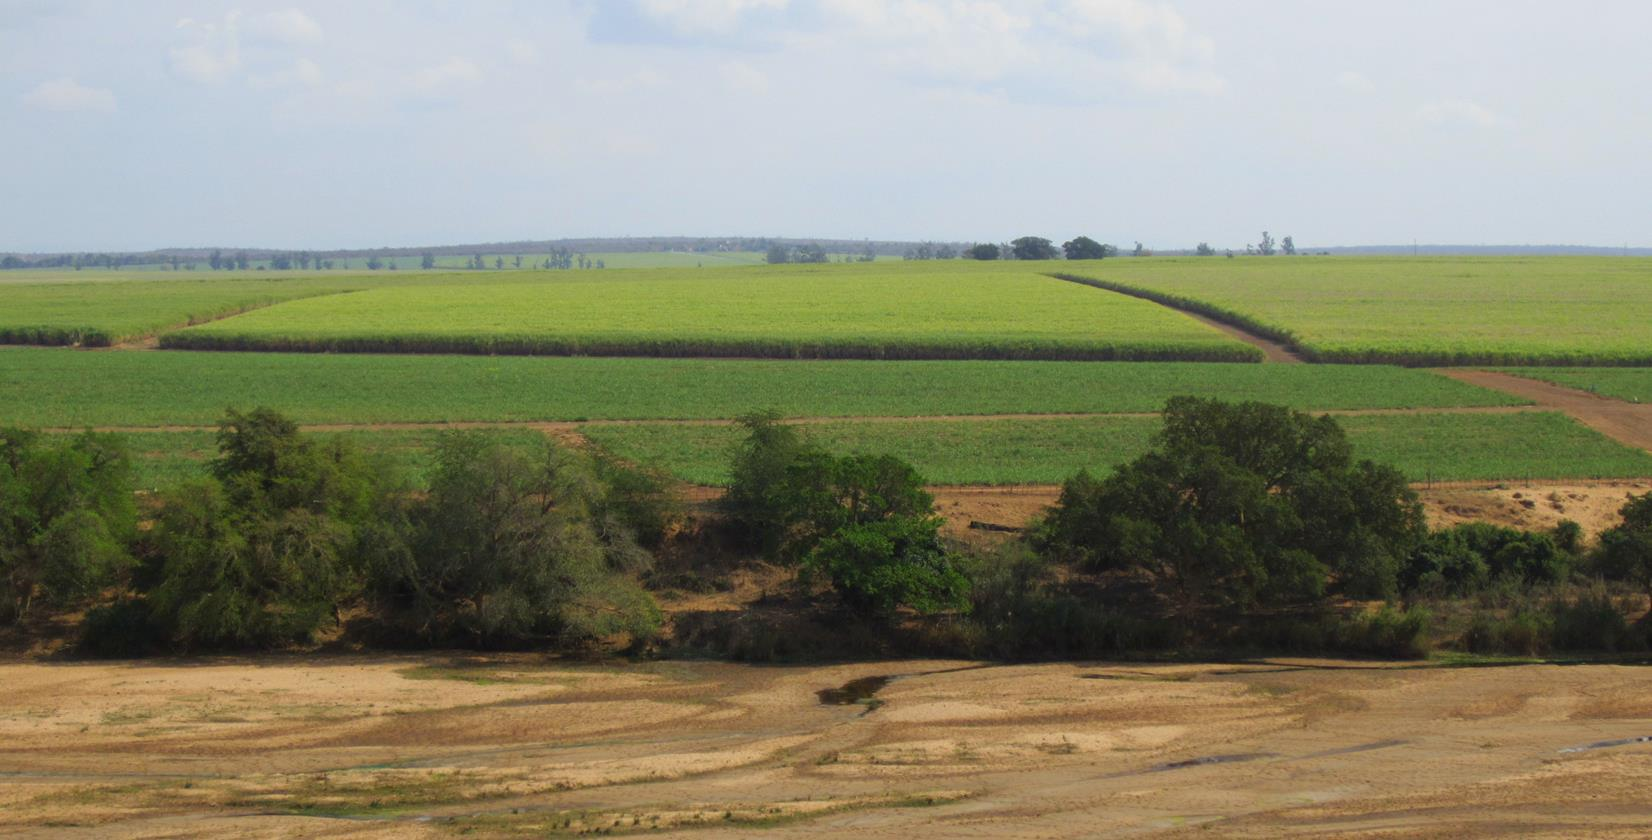 Passing by big sugar cane fields.